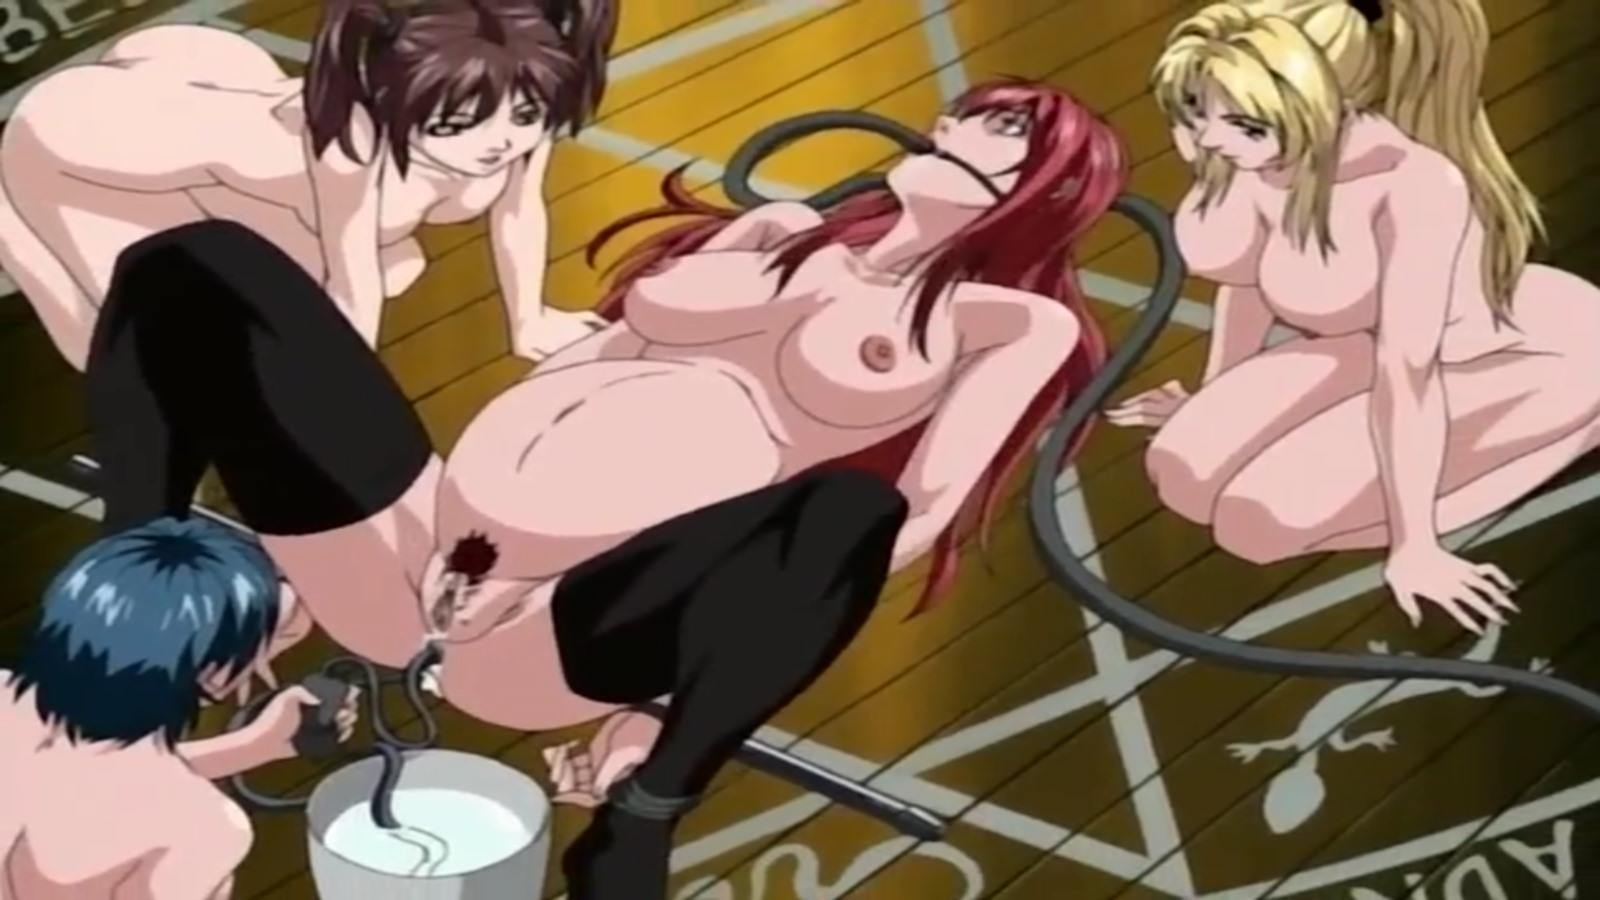 3D Anime Por anime porn bible black 3 | watchanime.video